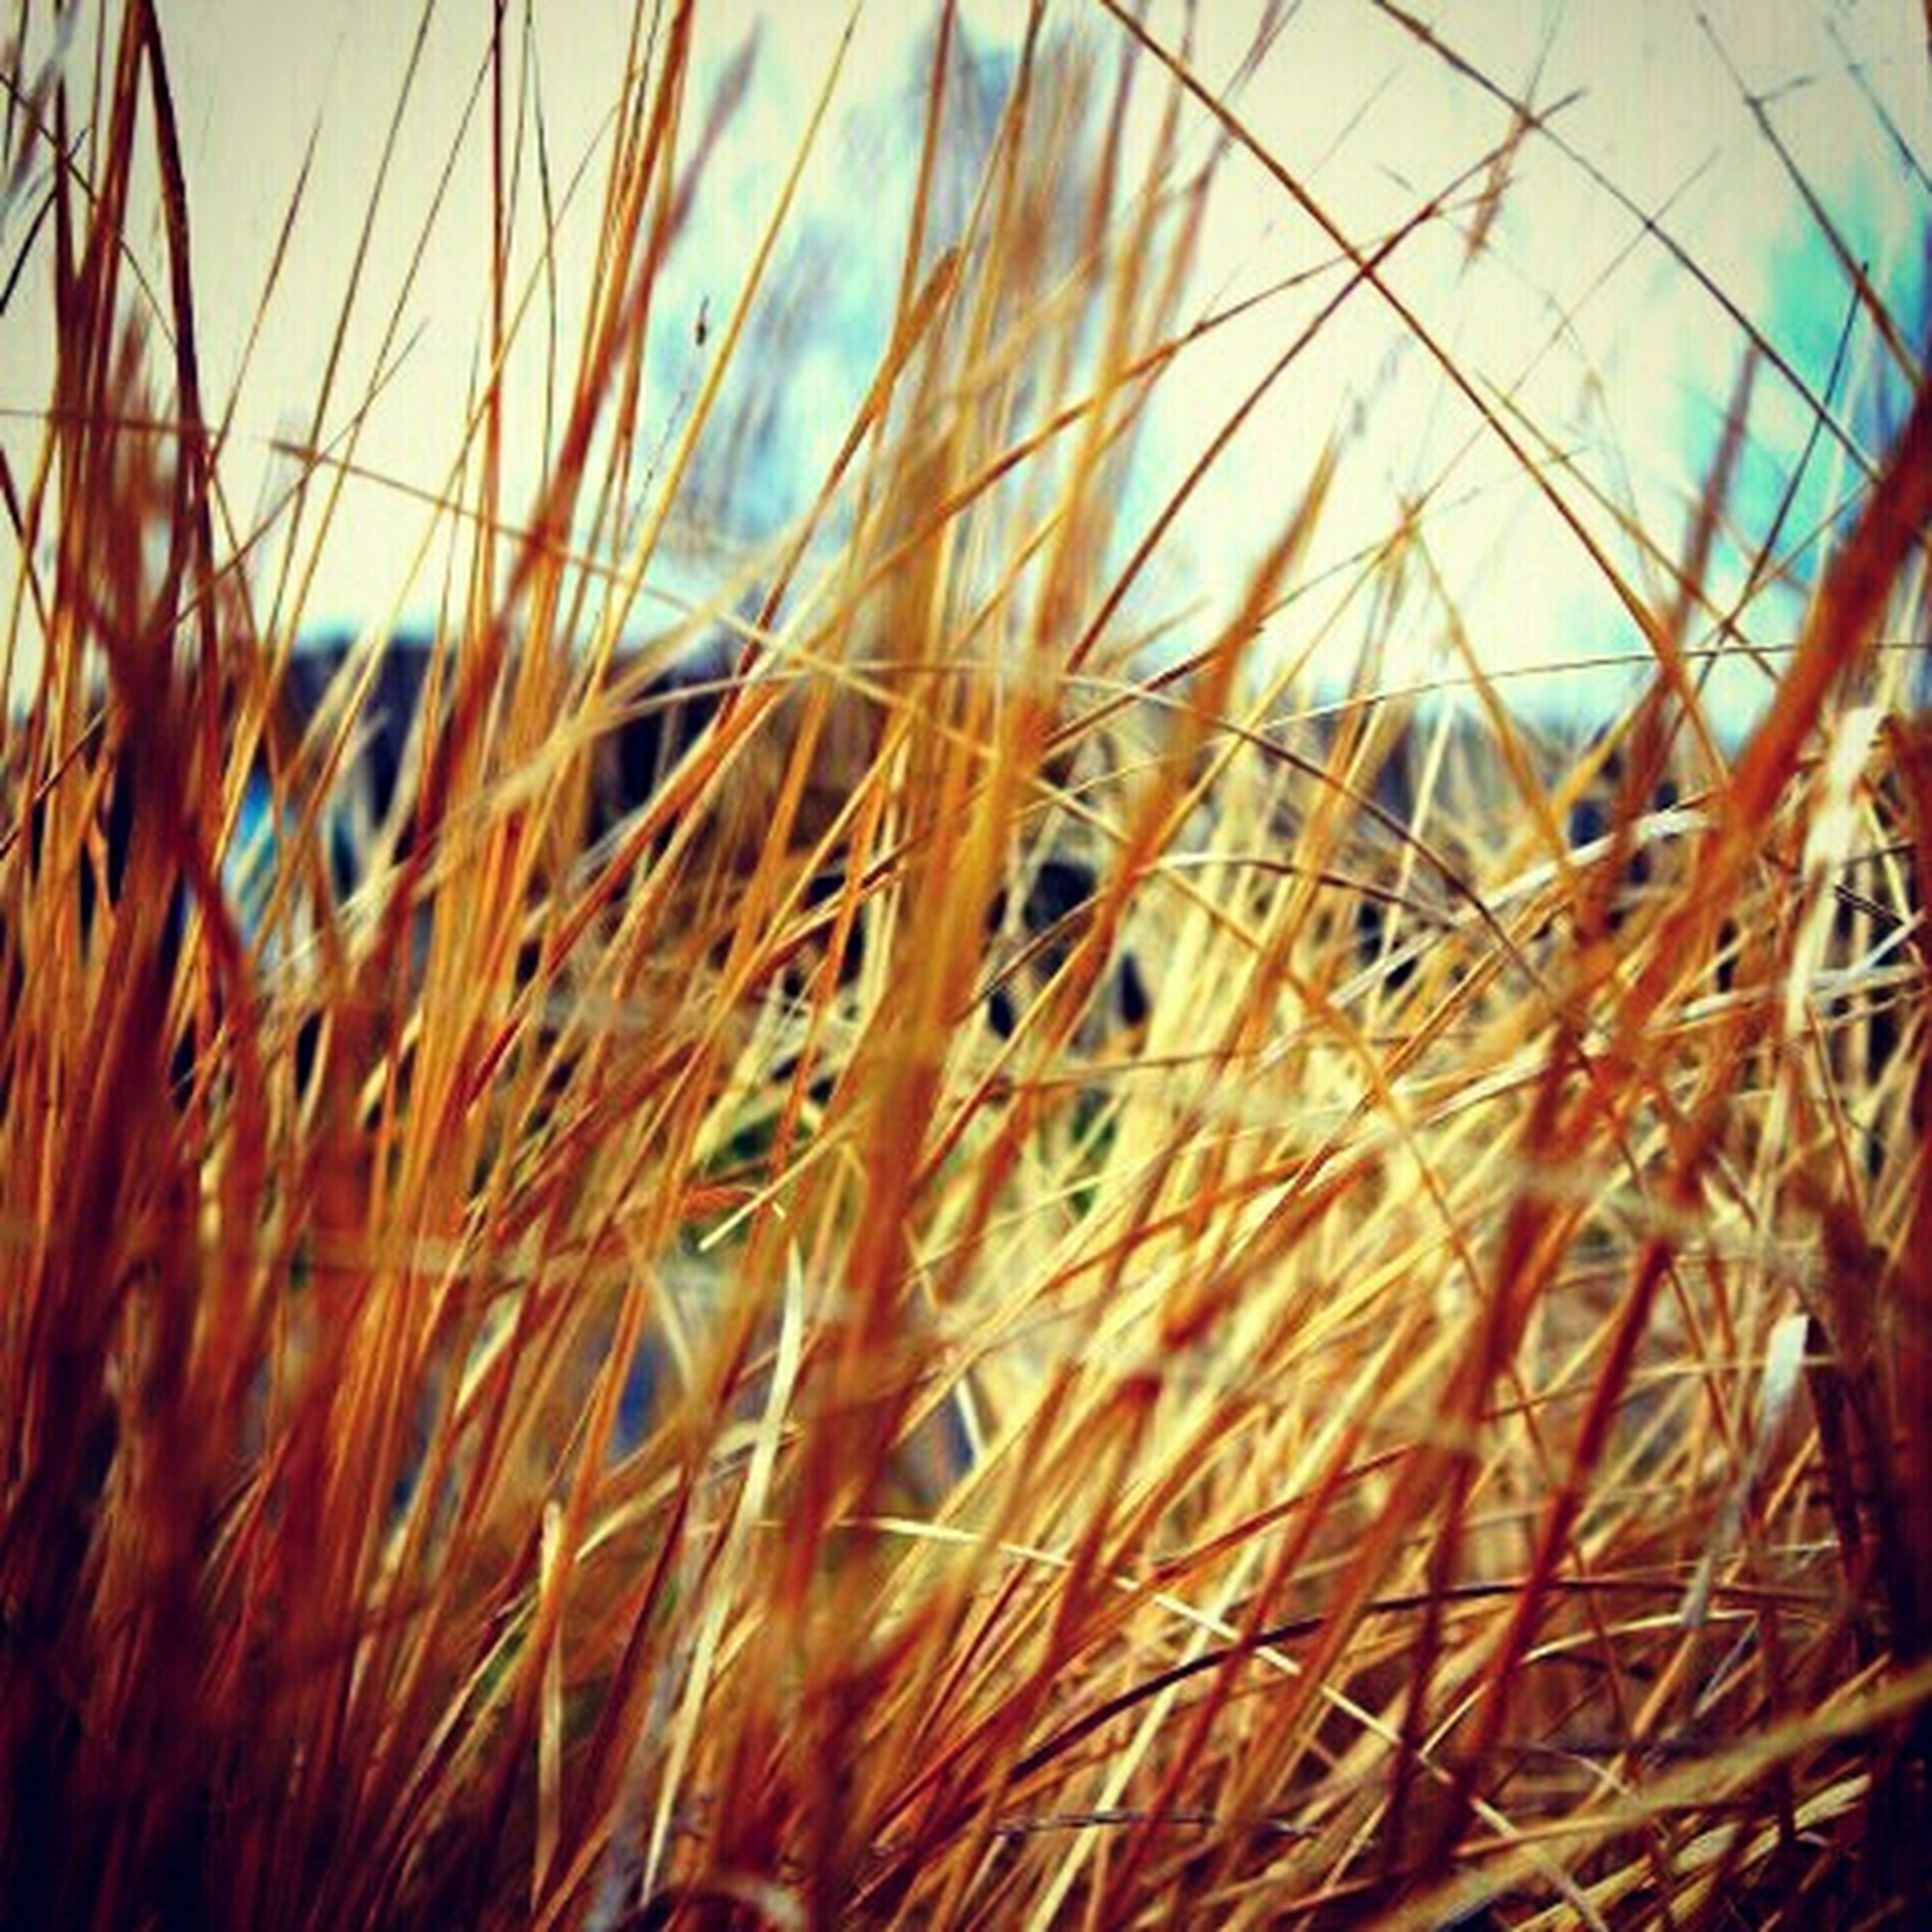 plant, grass, growth, close-up, nature, sky, field, dry, selective focus, straw, focus on foreground, sunset, tranquility, cereal plant, agriculture, growing, outdoors, crop, day, no people